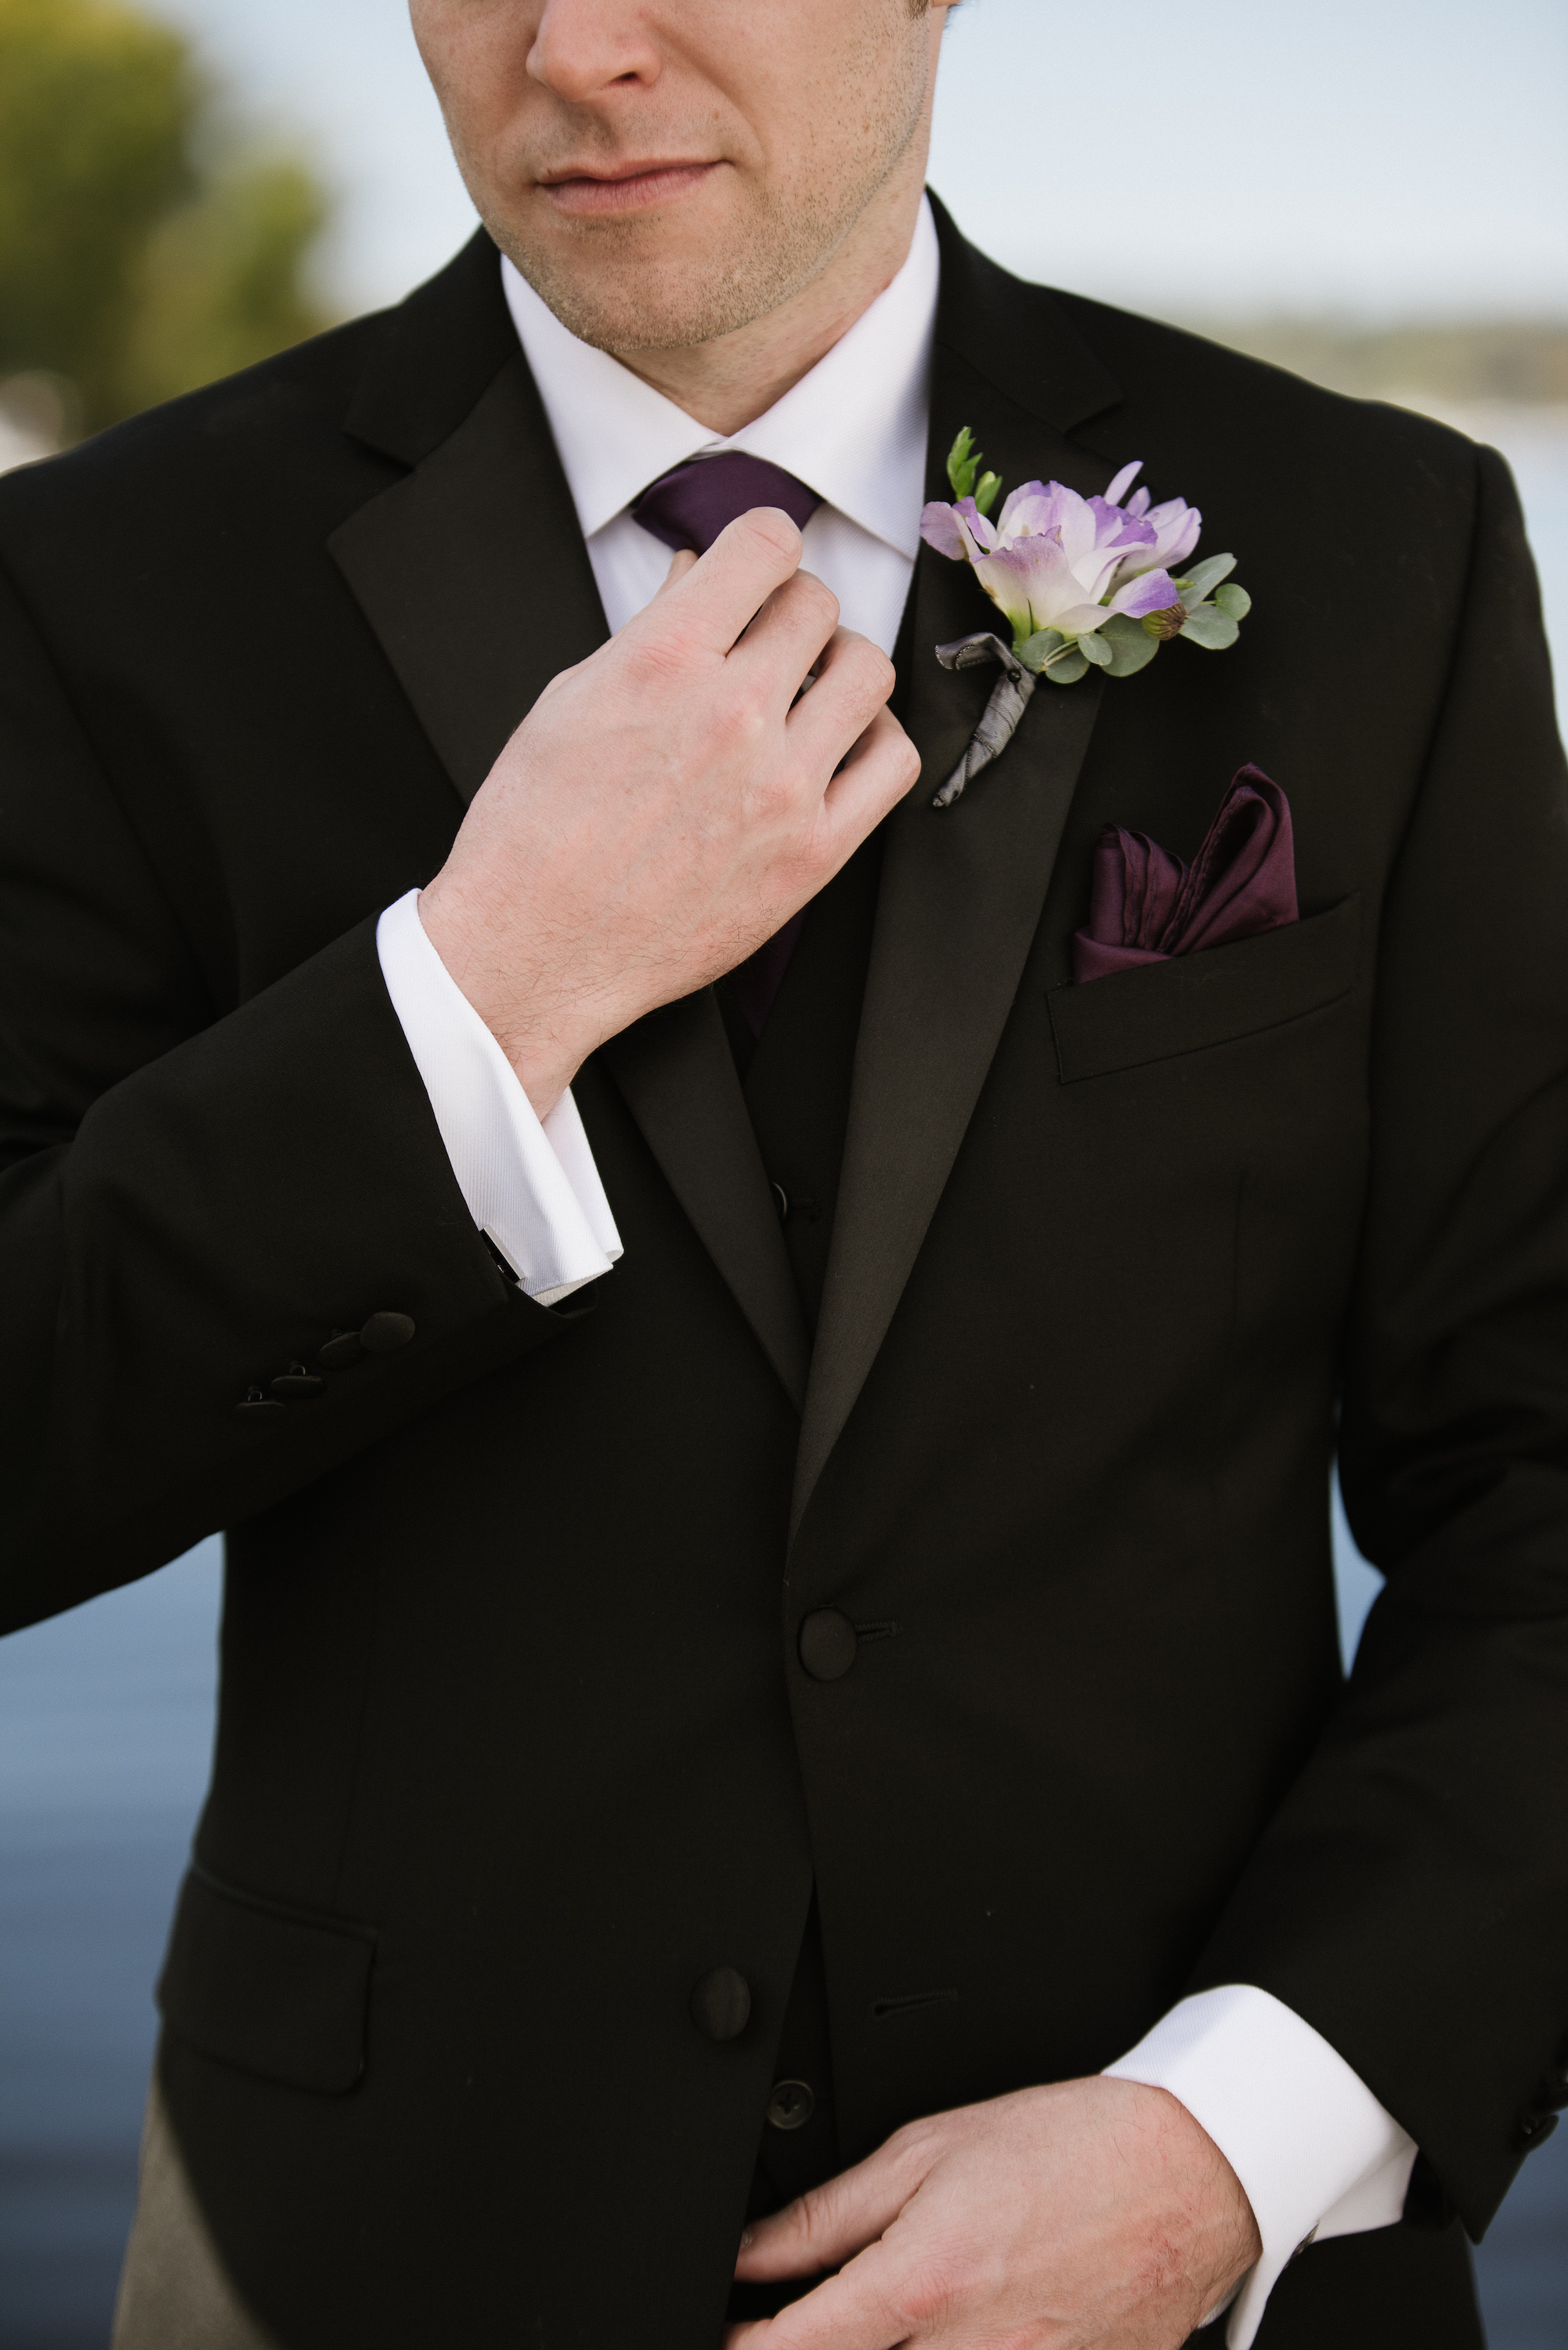 groom with purple boutonniere and black suit with eggplant tie   Dillinger Studios Minneapolis Photographer   Mexican American fusion wedding   Sixpence Events & Planning Minnesota wedding planner .jpg